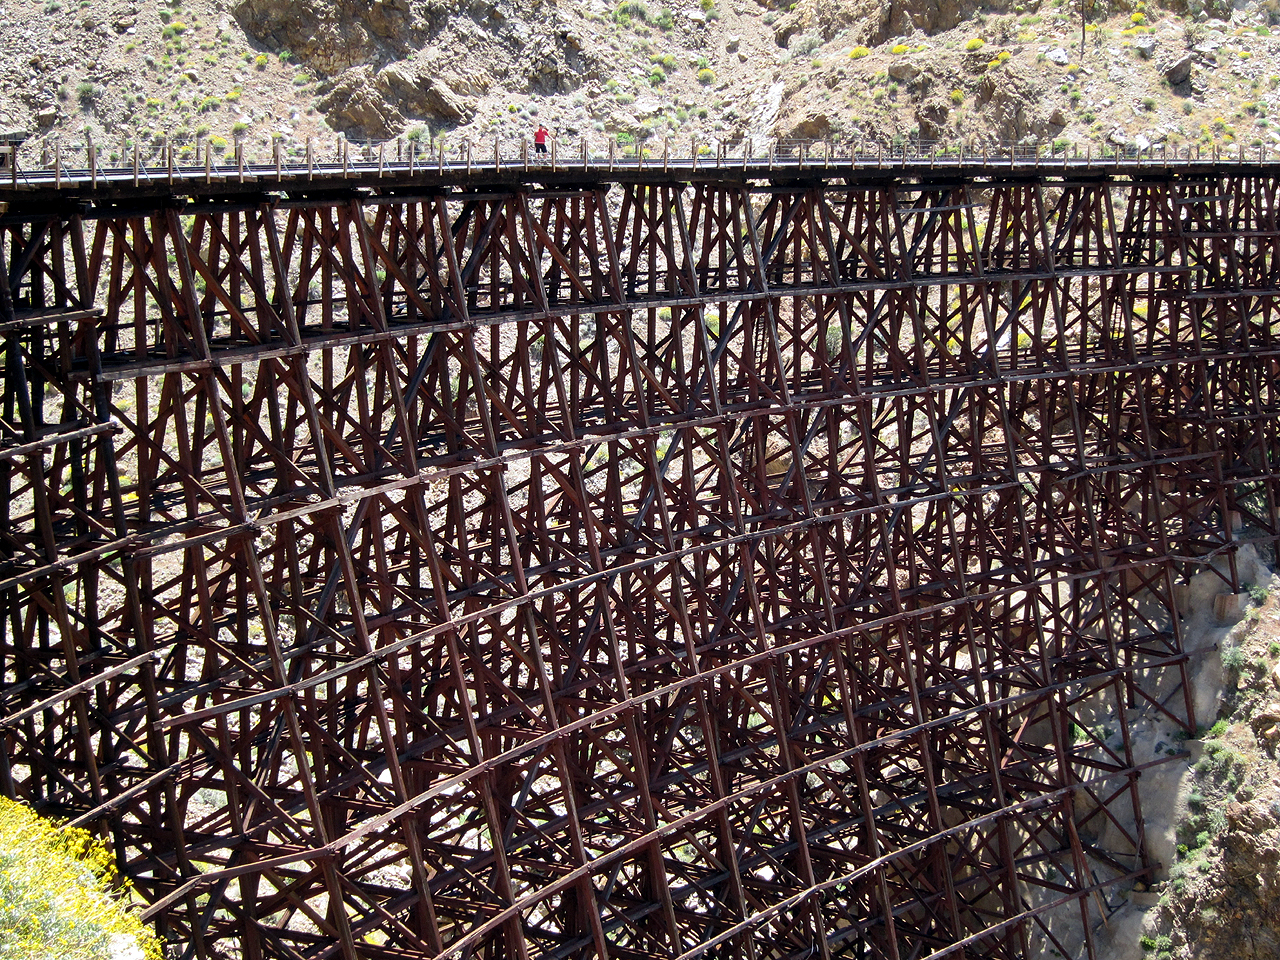 Bob gives some perspective to the sheer size of the Goat Canyon Trestle